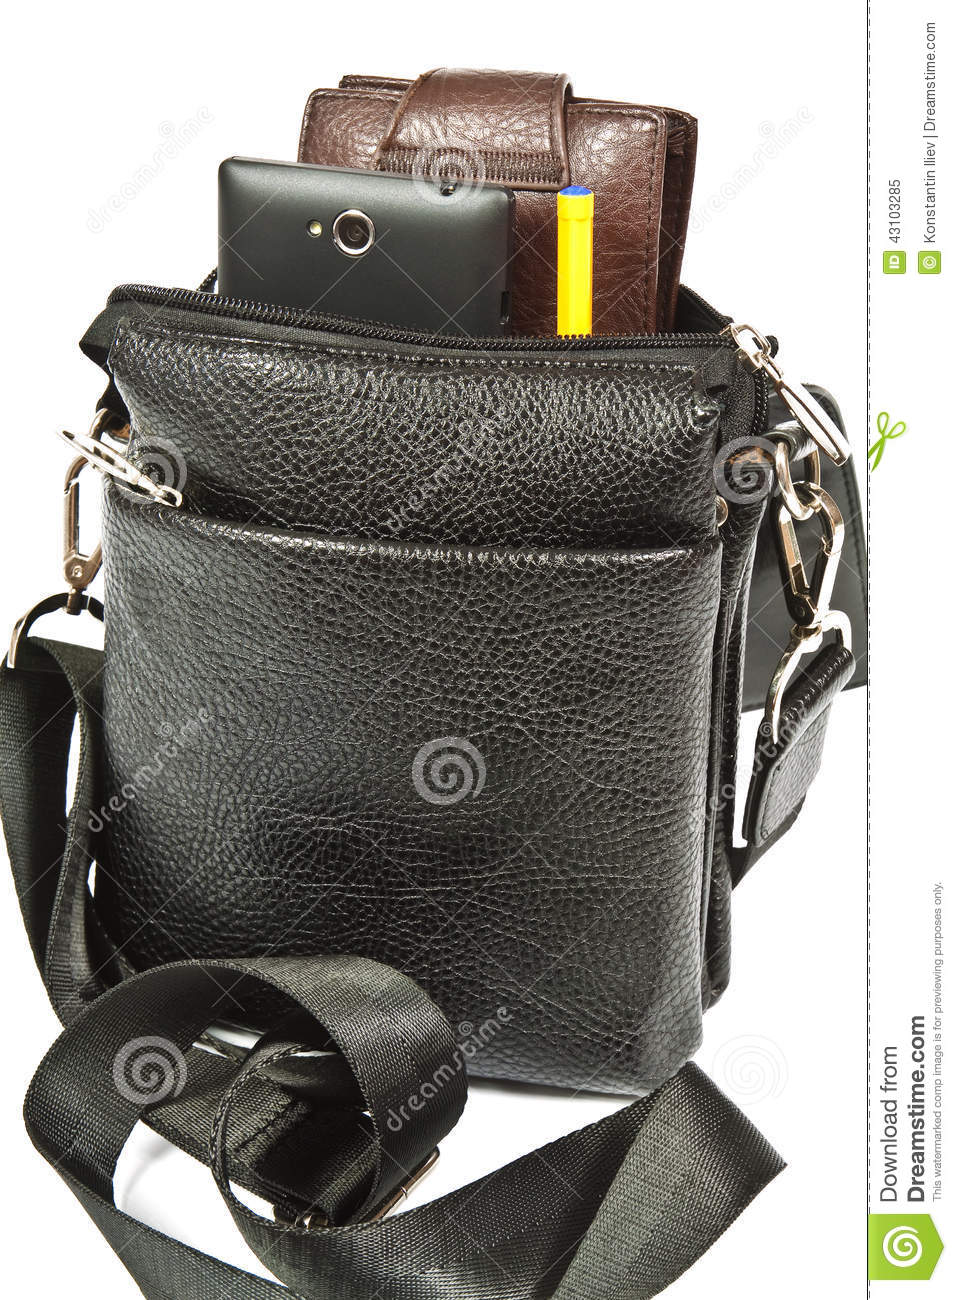 b271be5c Small Black Leather Bag Men Stock Image - Image of accessory, metal ...